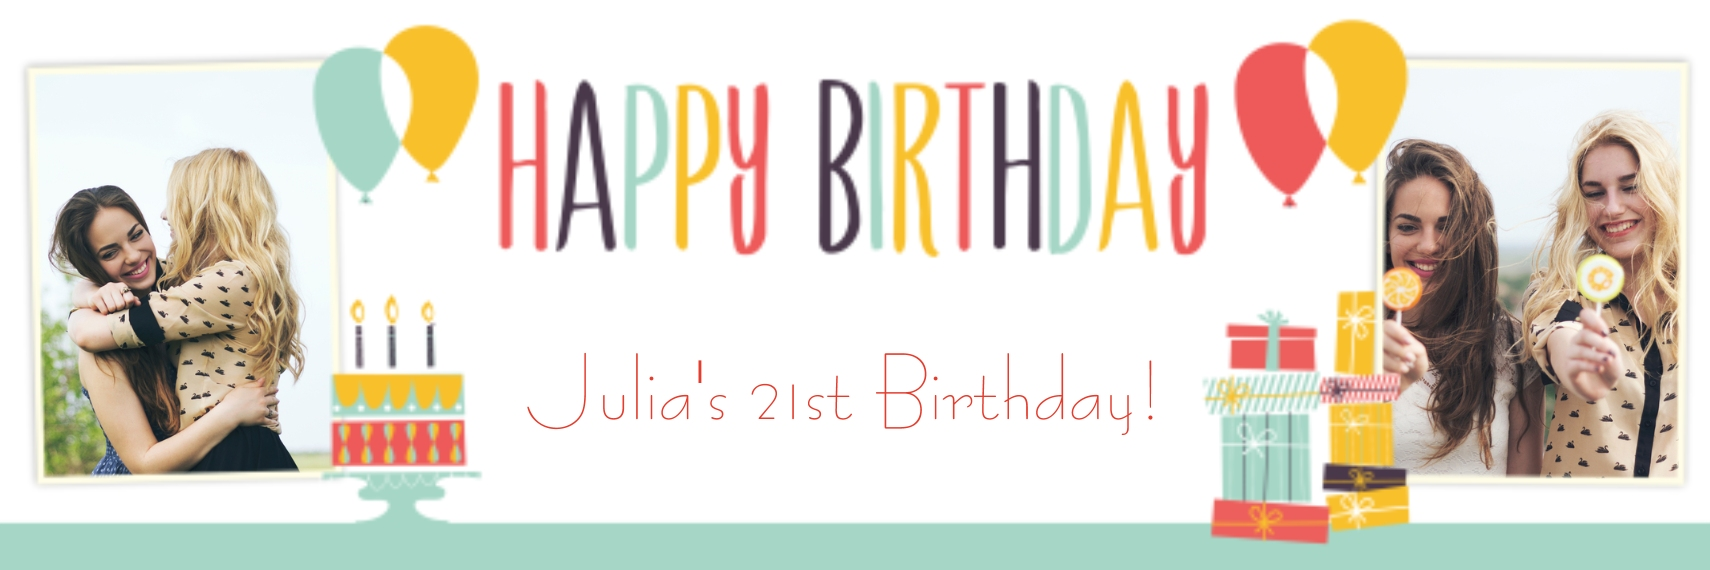 Birthday Photo Banner 2x6, Home Décor -Retro Shindig